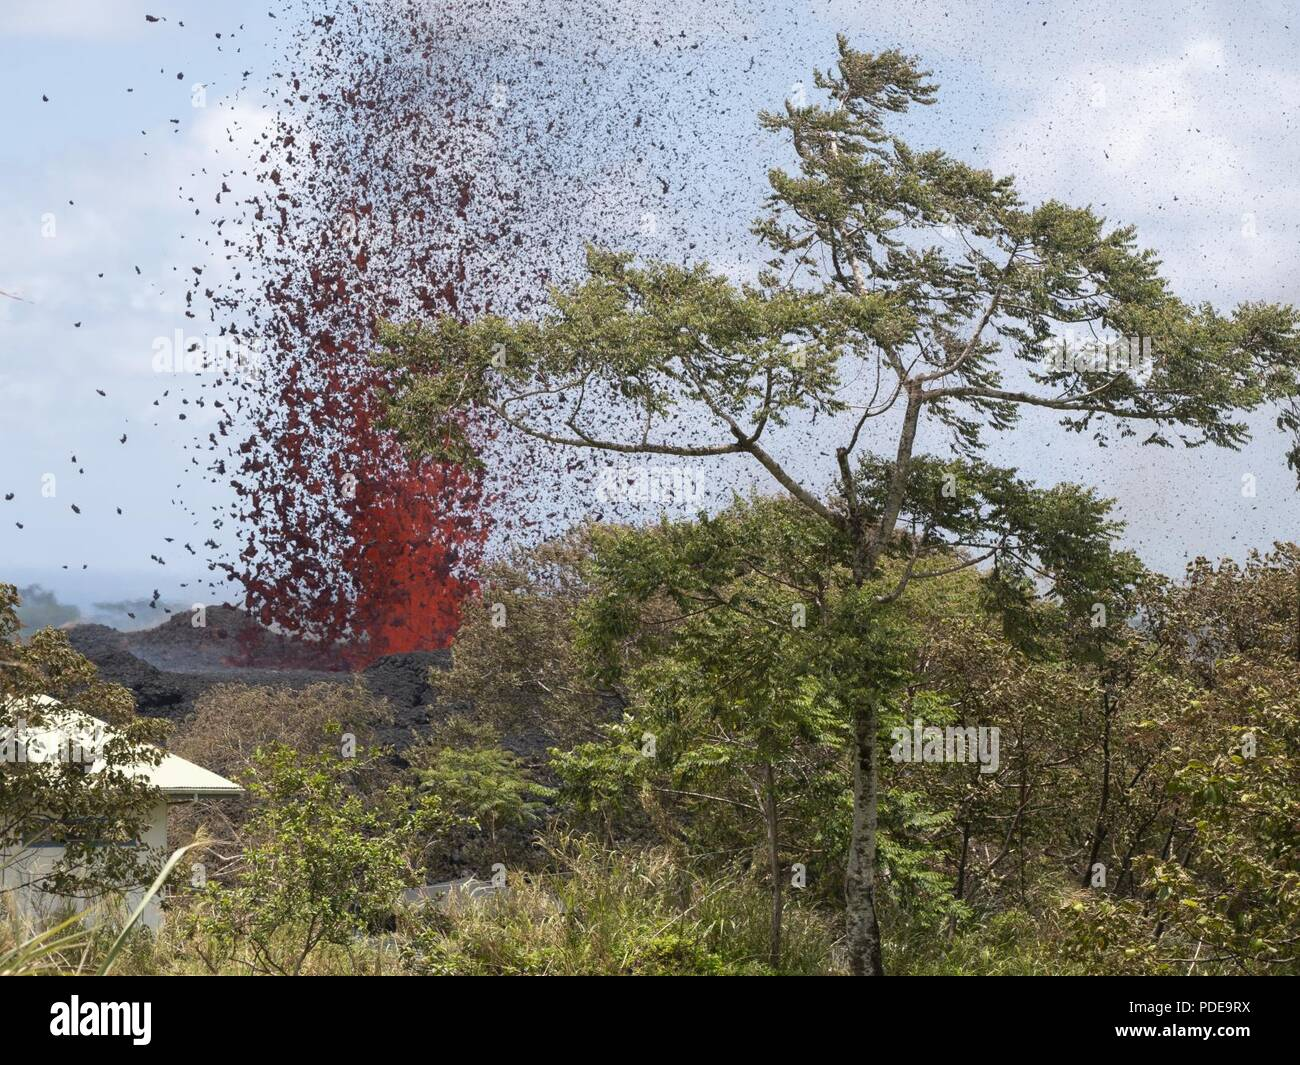 A 17th lava fissure erupts hundreds of feet in the air during a volcano outbreak May 18, 2018, Pahoa, Hawaii. In response to the ongoing outbreak, more than 100 members of the Hawaii National Guard have been called upon to assist Hawaii County agencies as part of an operation called Task Force Hawaii. - Stock Image